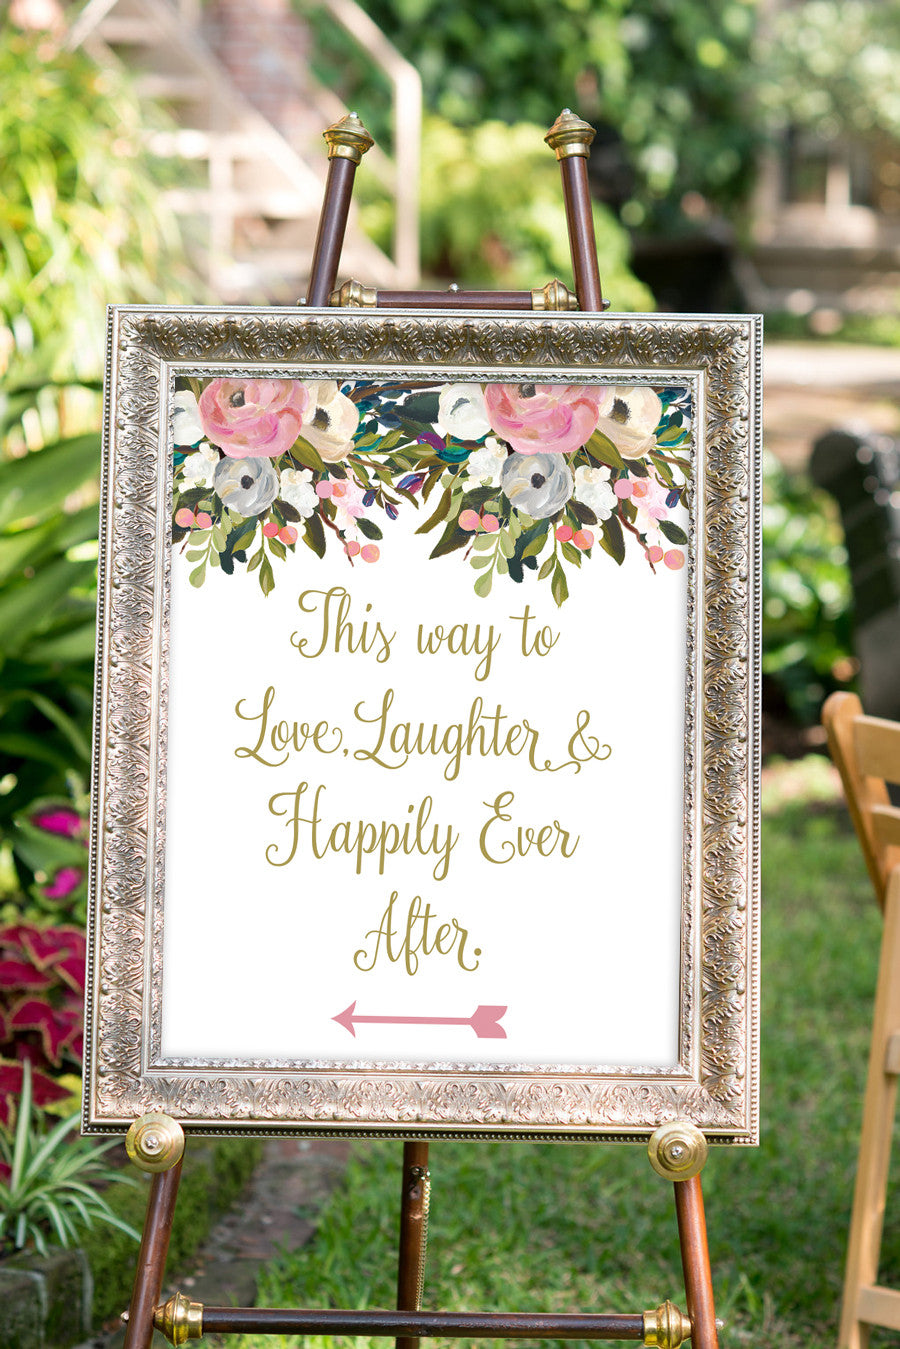 It's just a photo of Juicy Printable Wedding Signage